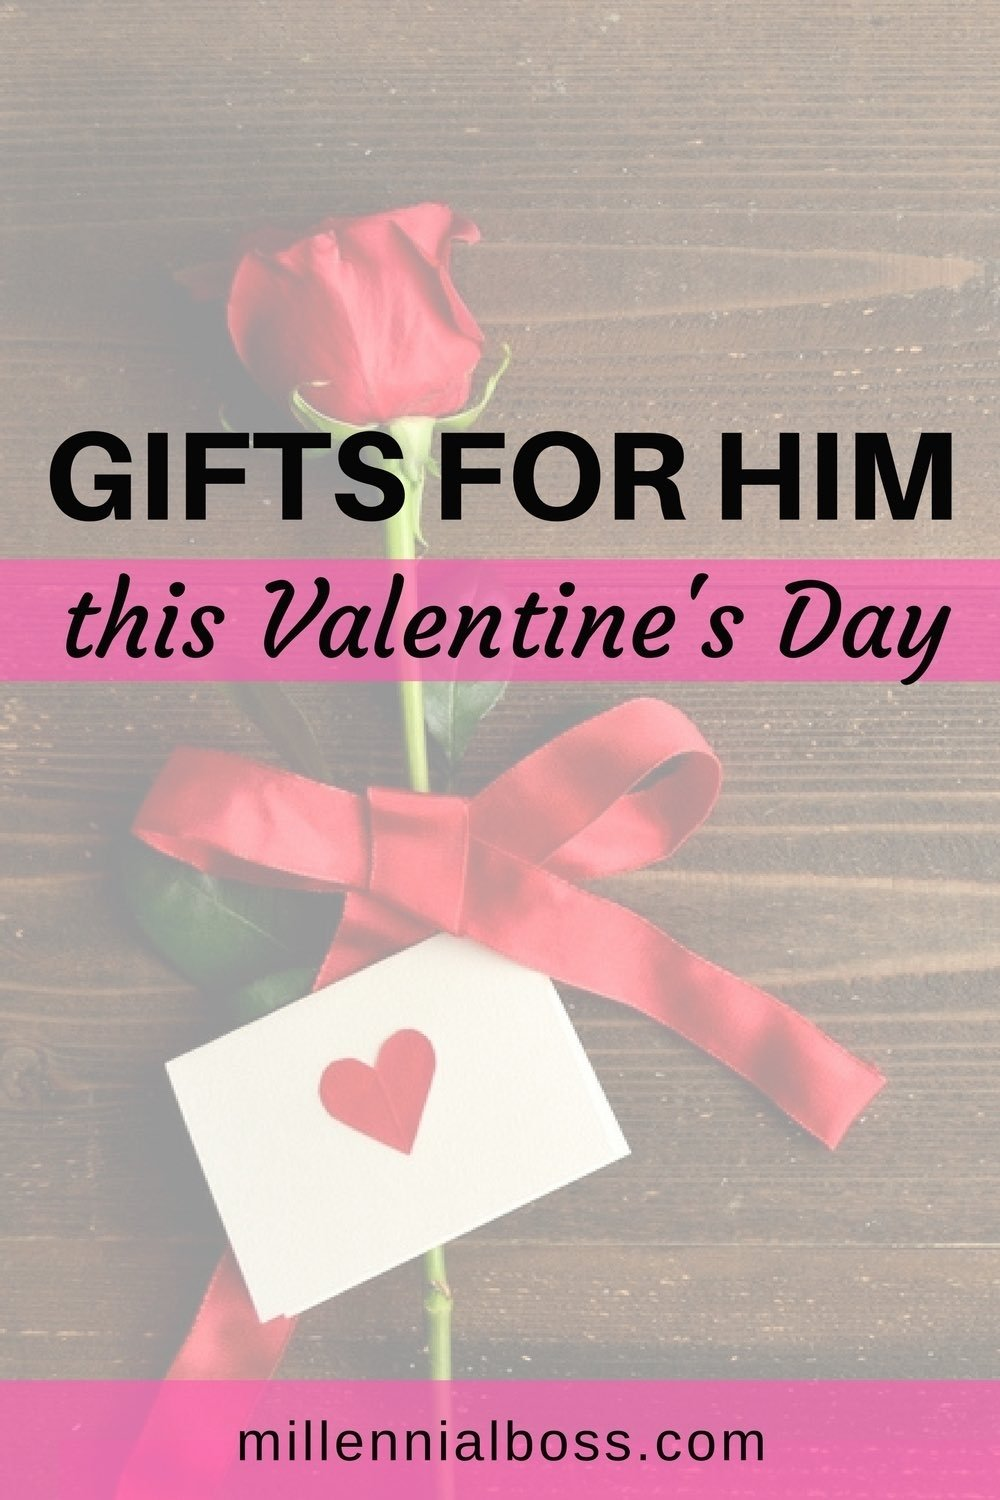 10 Pretty Valentines Day For Husband Ideas top 25 valentines day gifts for him millennial boss 2020